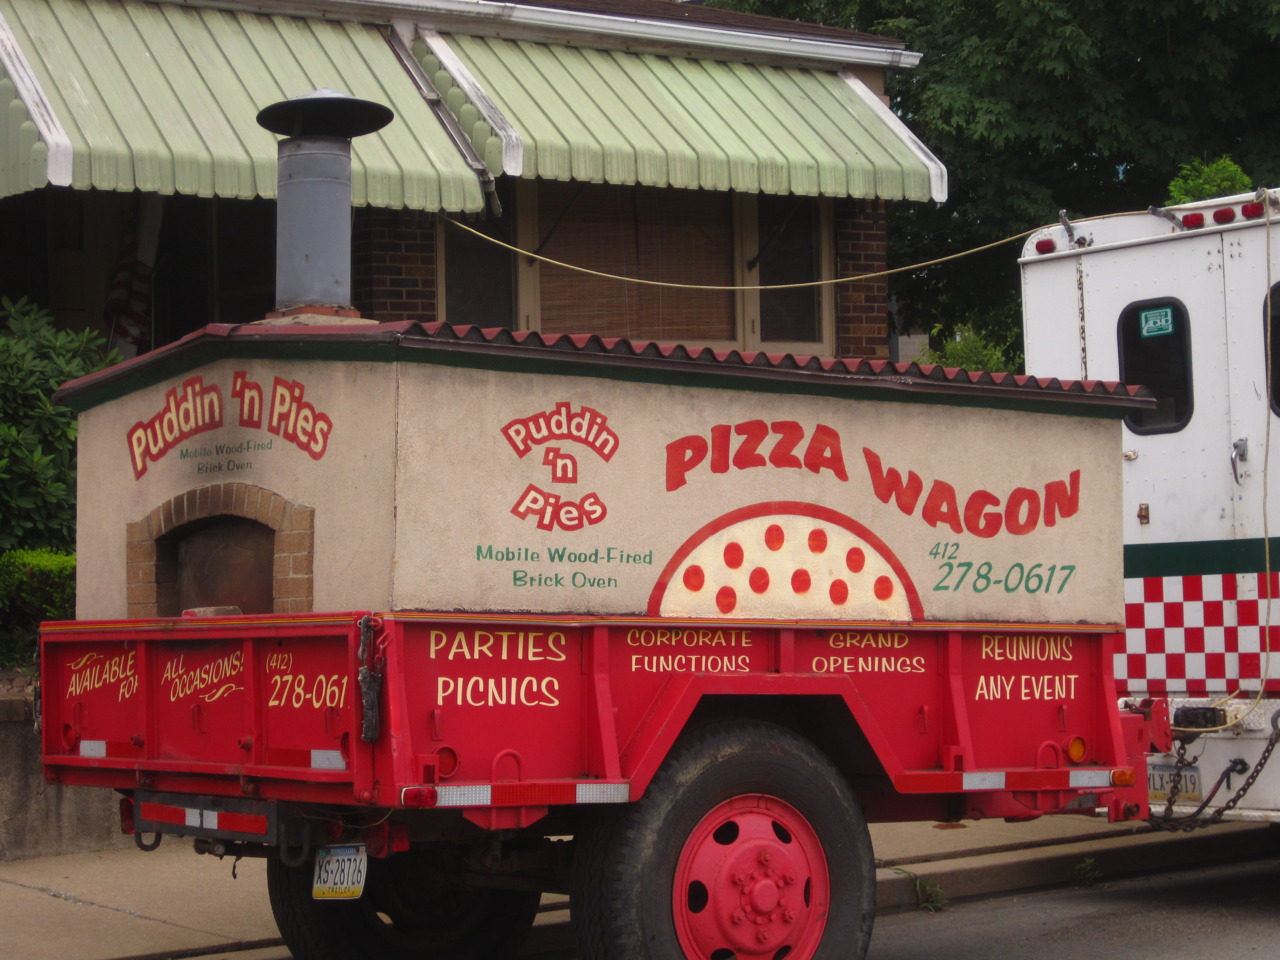 "pittsburghisbeautiful: Van pulling ""The Pizza Wagon"" in Carnegie. Offers puddin 'n pies with a wood fired brick oven. Good for parties, picnics, corporate functions, grand openings, reunions, or any event."